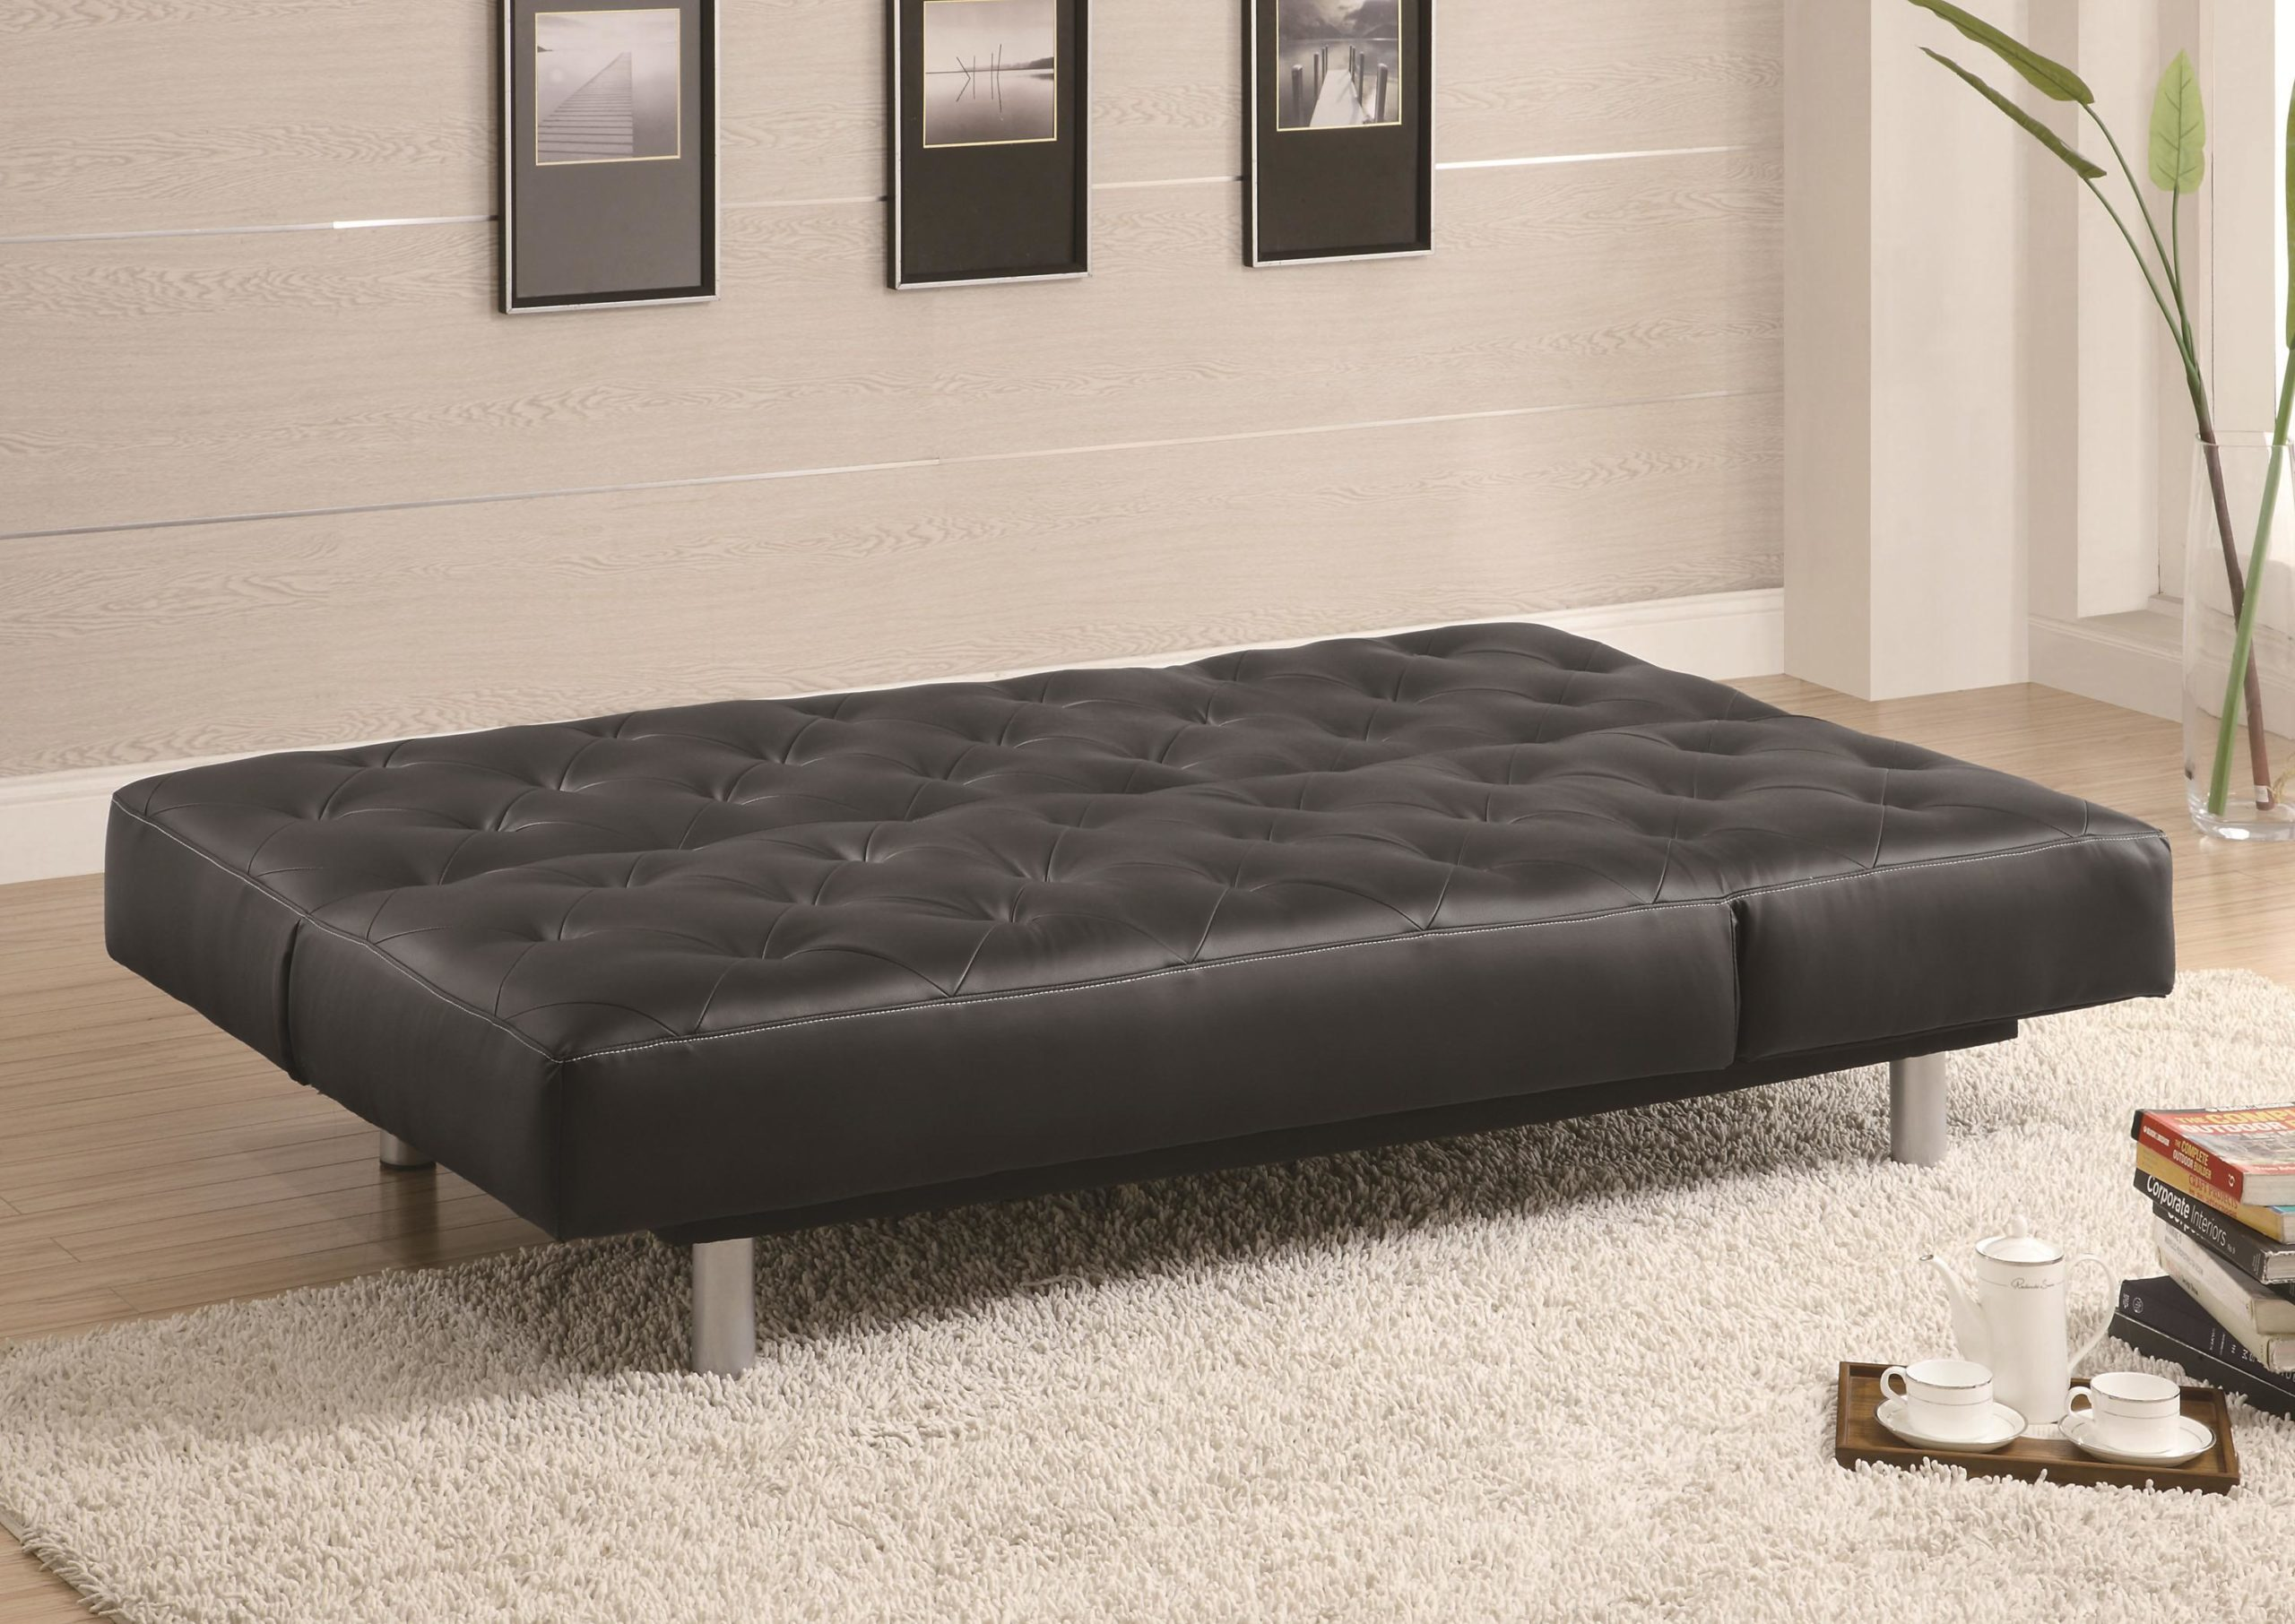 Brown Vinyl Tufted Sofa Bed - Oversize Chaise